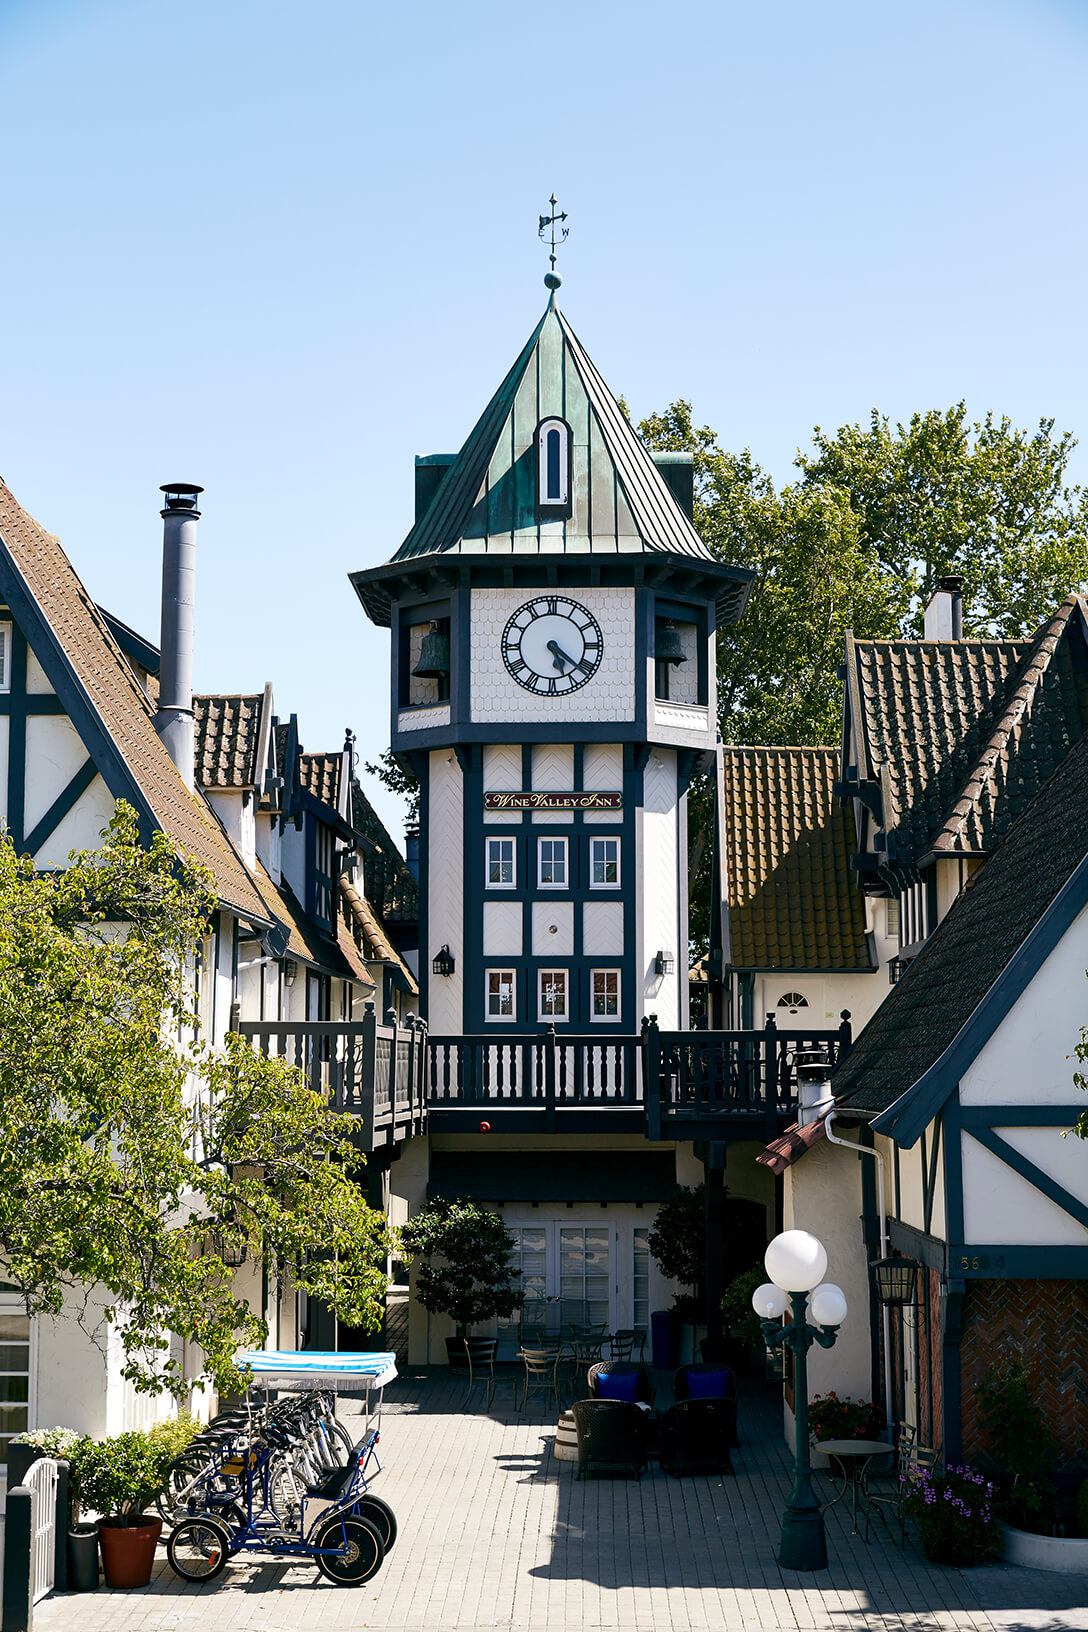 Wine Valley Inn tower clock townsquare